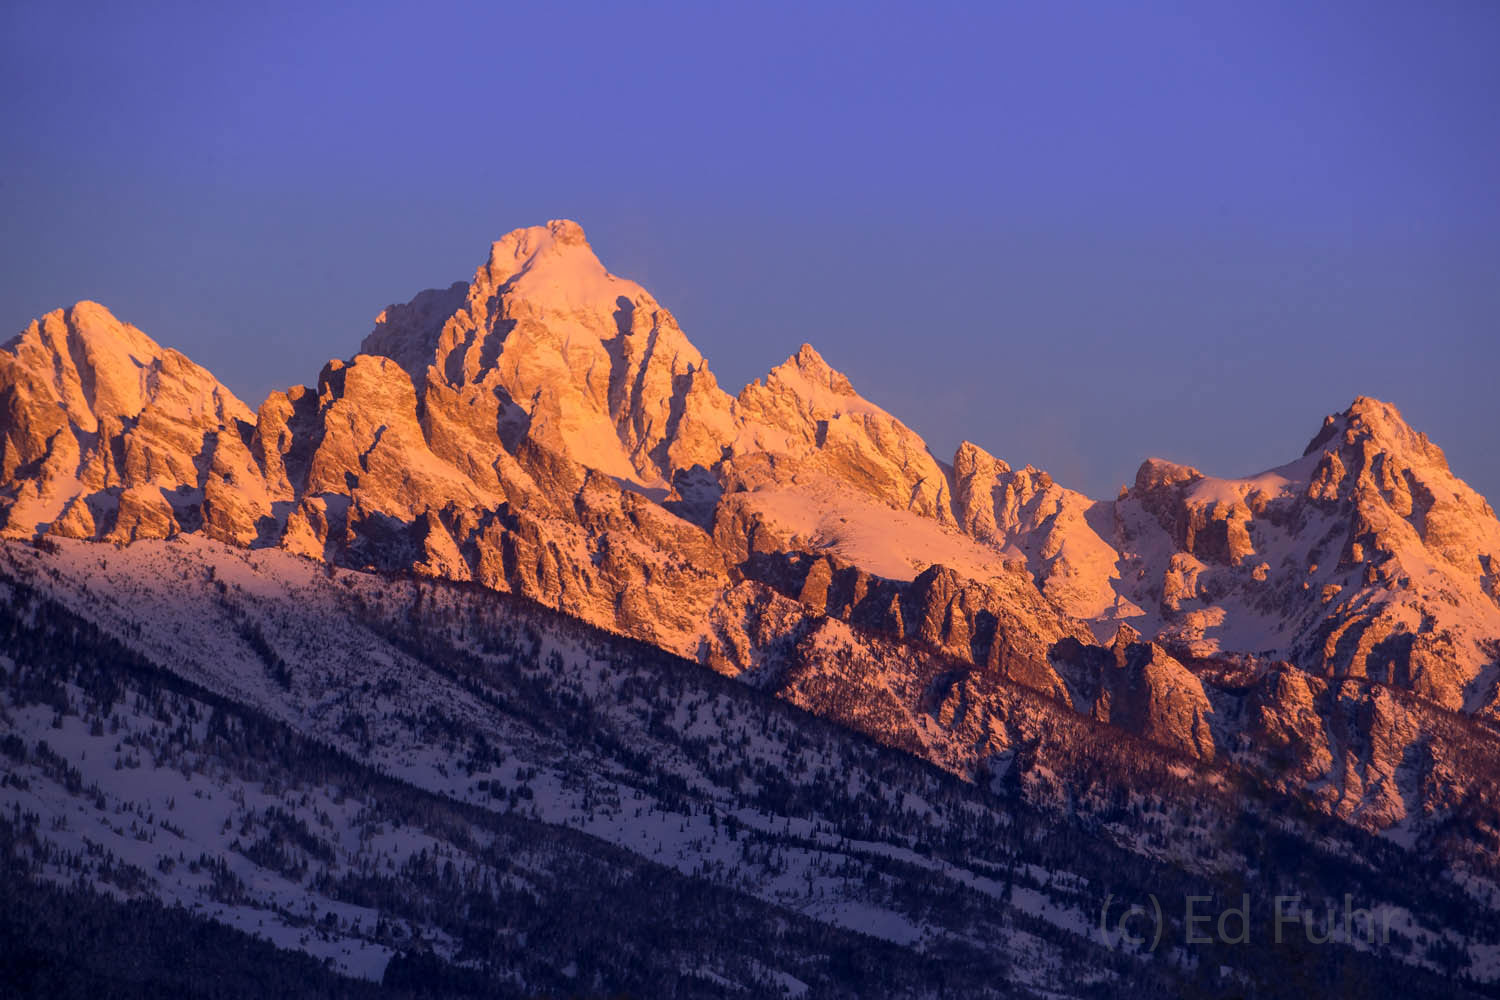 grand teton, sunrise, winter, 2016, photograph, photo